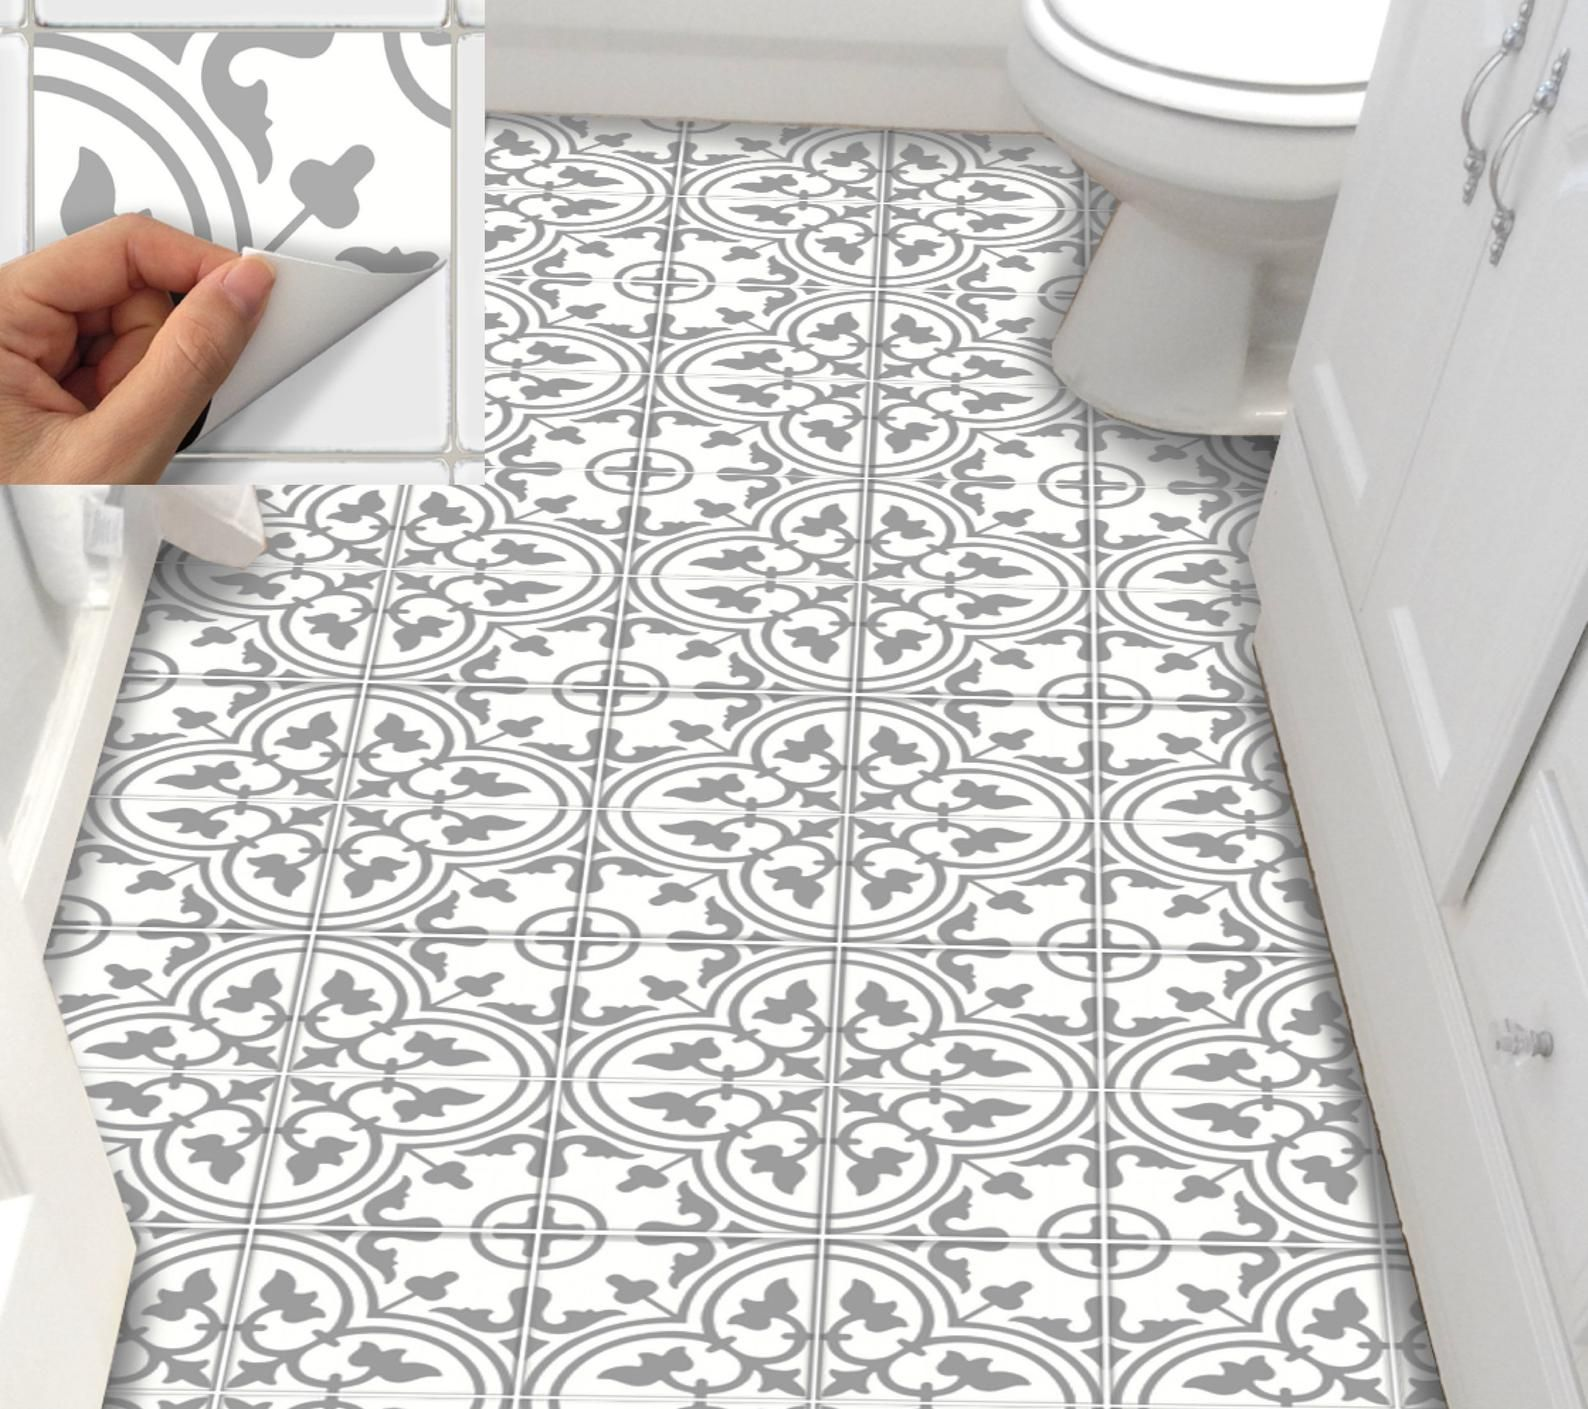 Tile Stickers Vinyl Decal Waterproof Removable For Kitchen Etsy Peel And Stick Floor Flooring Tile Decals